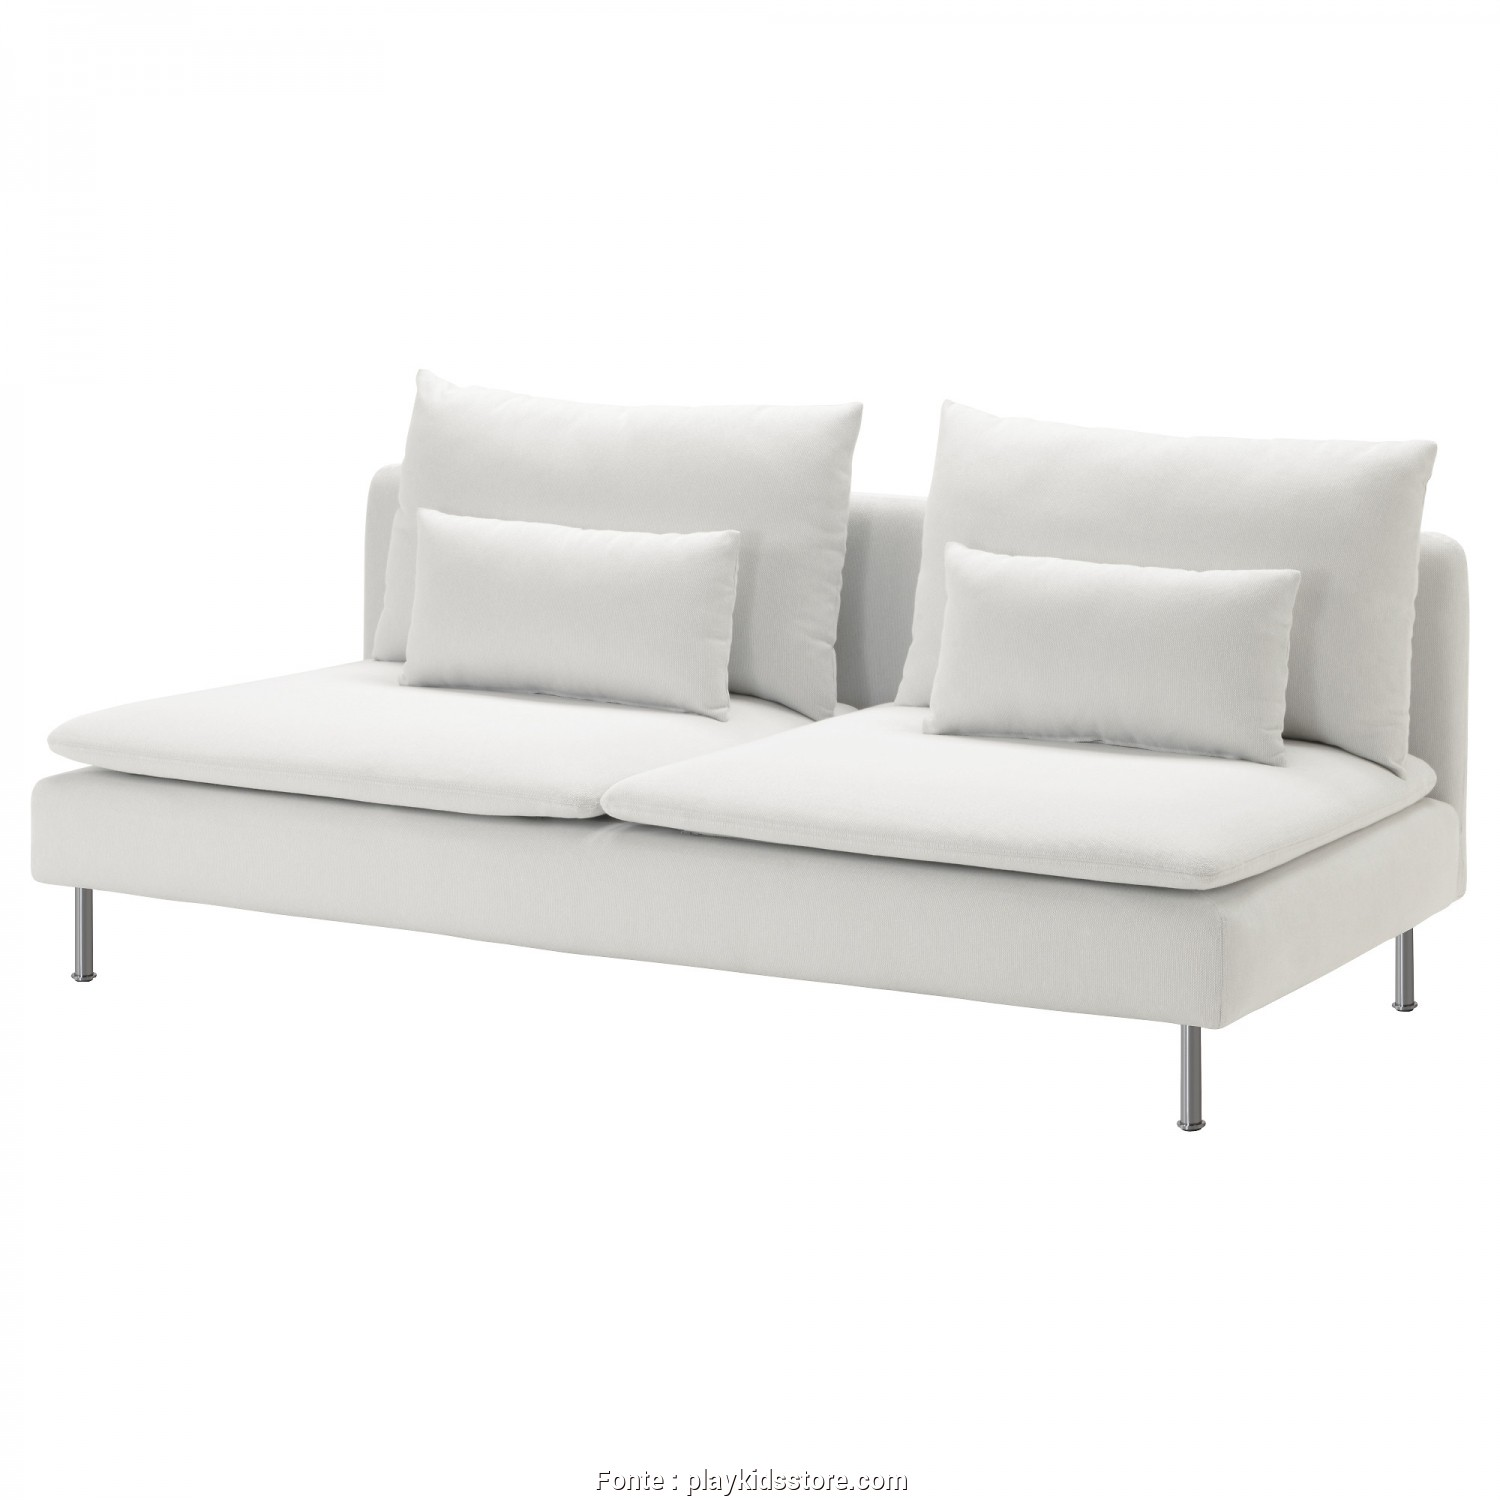 Ikea L Shaped Futon, Locale Furniture: Classy Ikea Couch Covers Design, Stylish Living Room